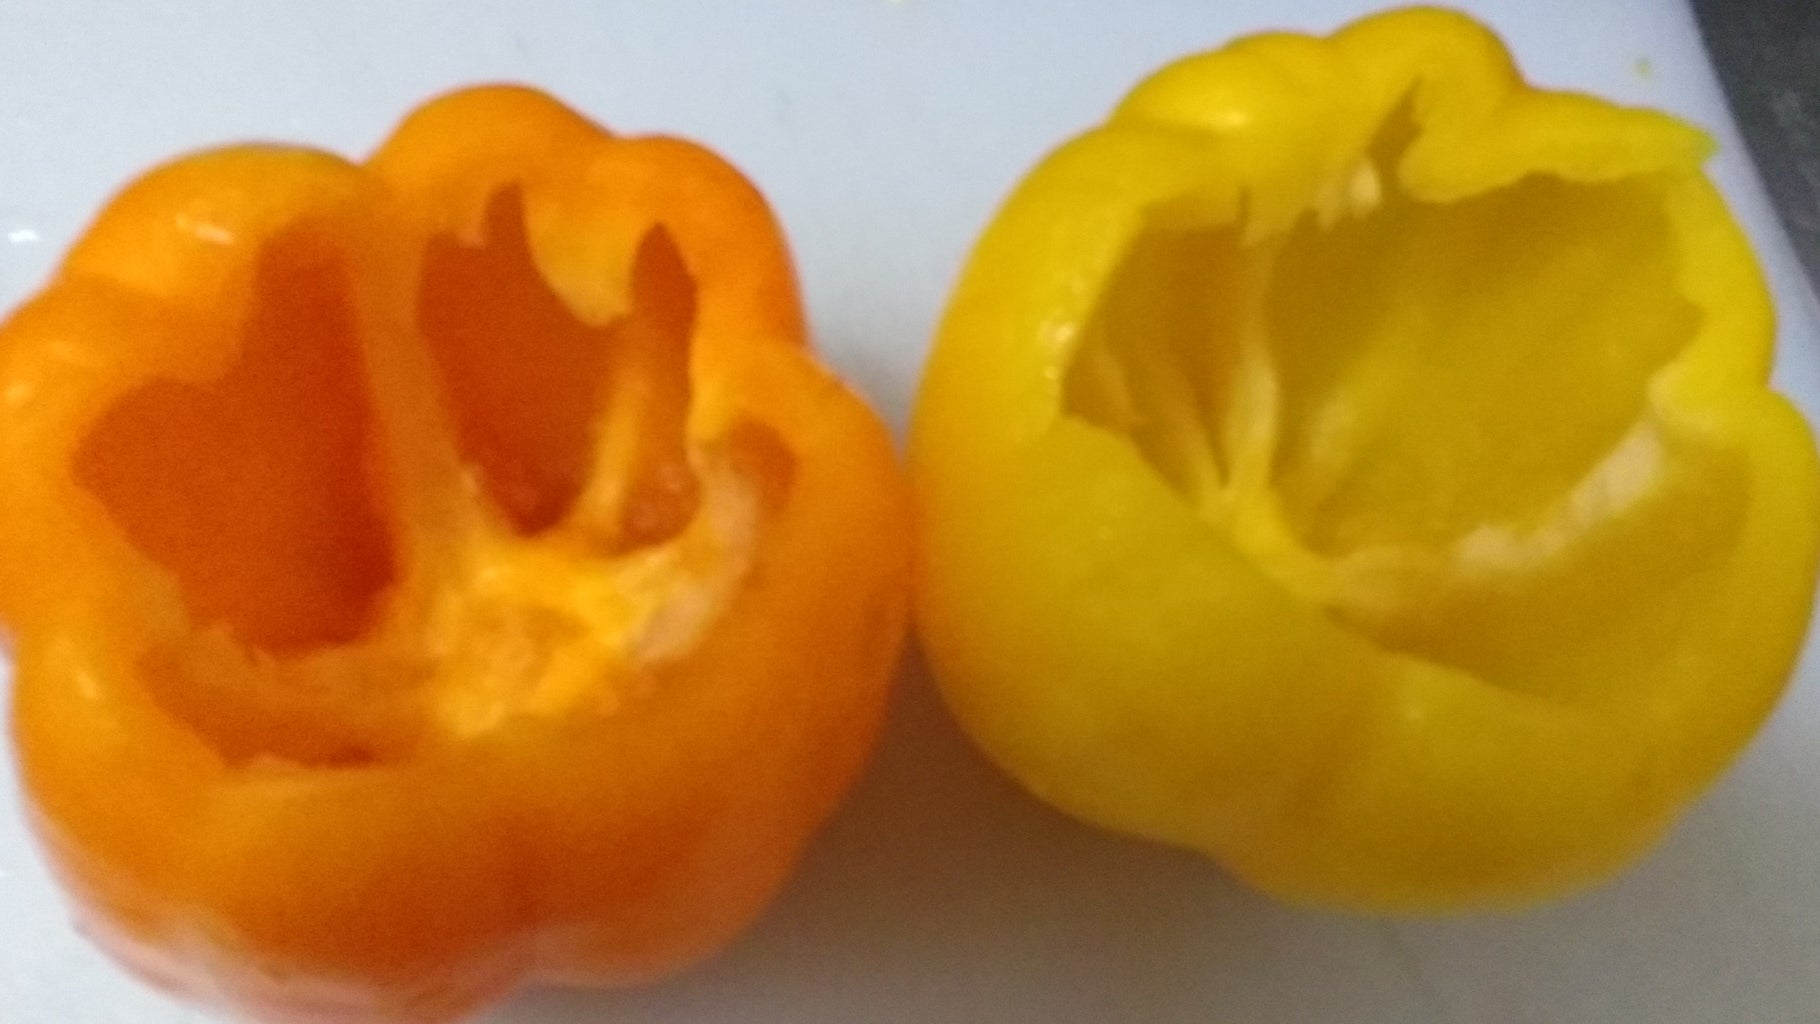 Cut Open and Clean Out Your Bell Peppers